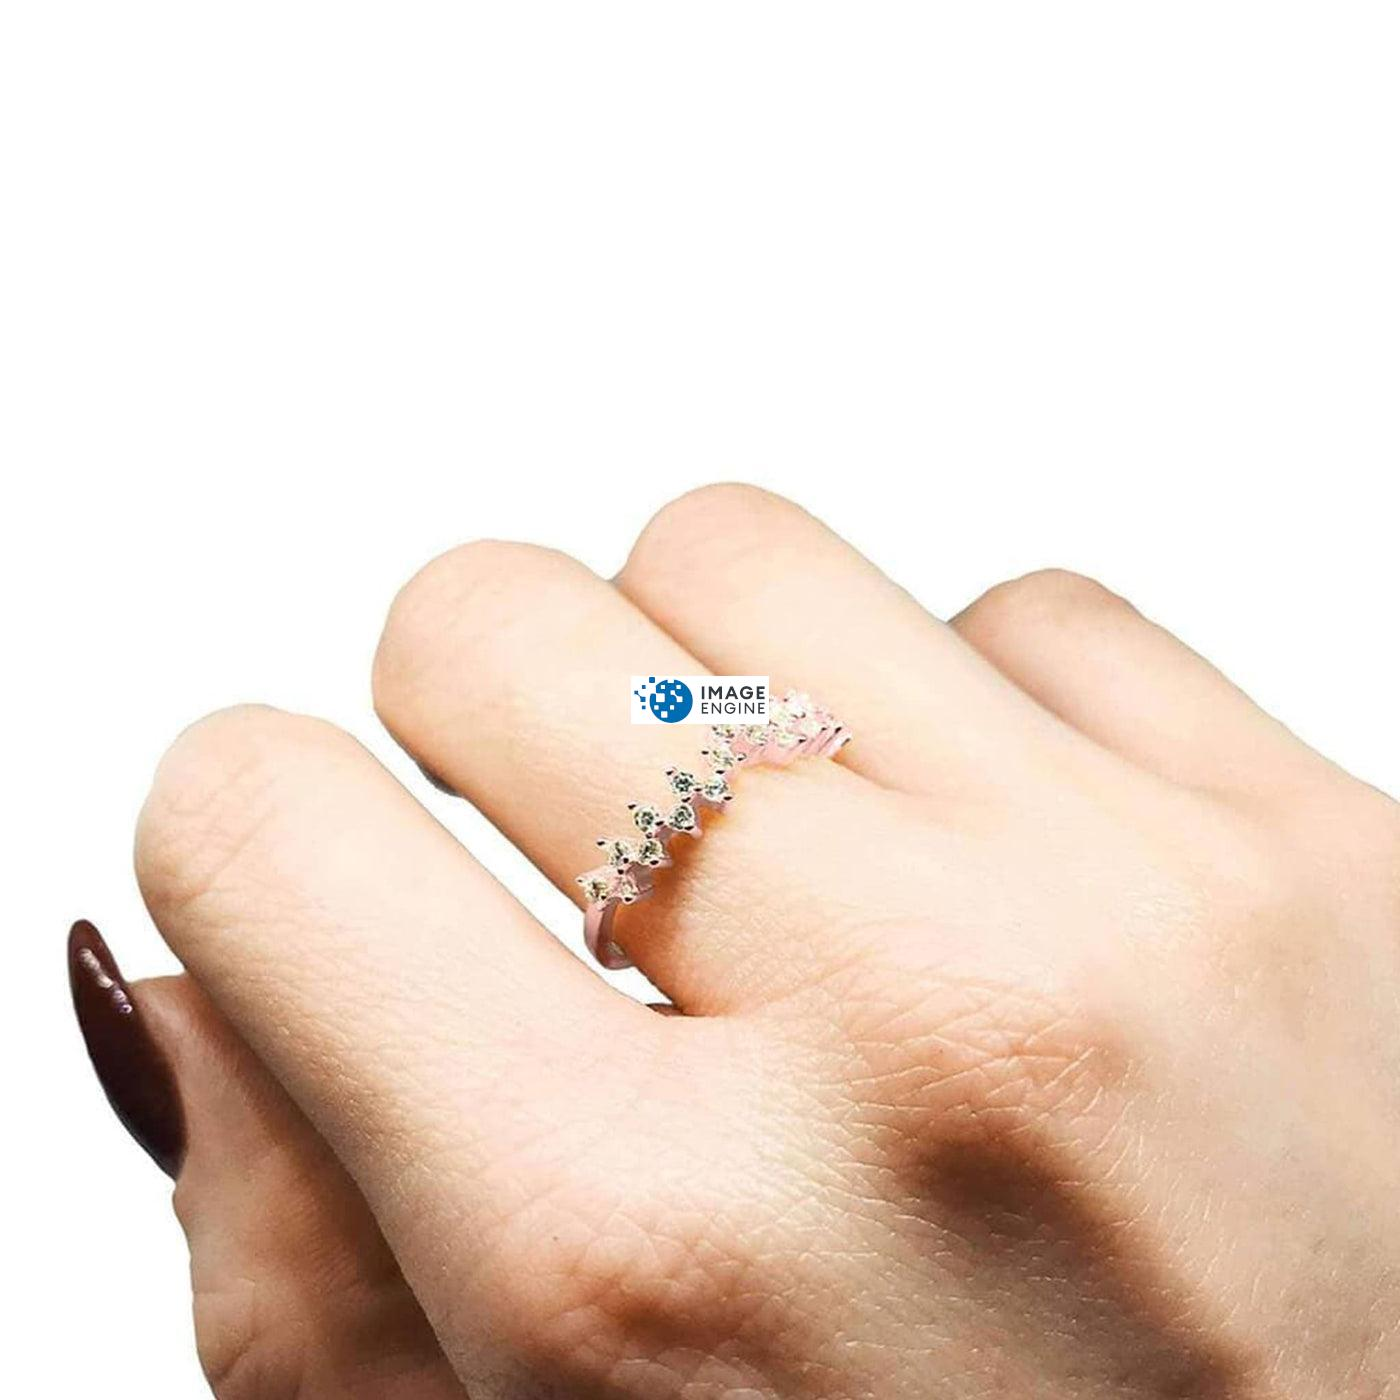 Esther Petite Cluster Ring - Wearing on Middle Finger on Higher Angle View - 18K Rose Gold Vermeil